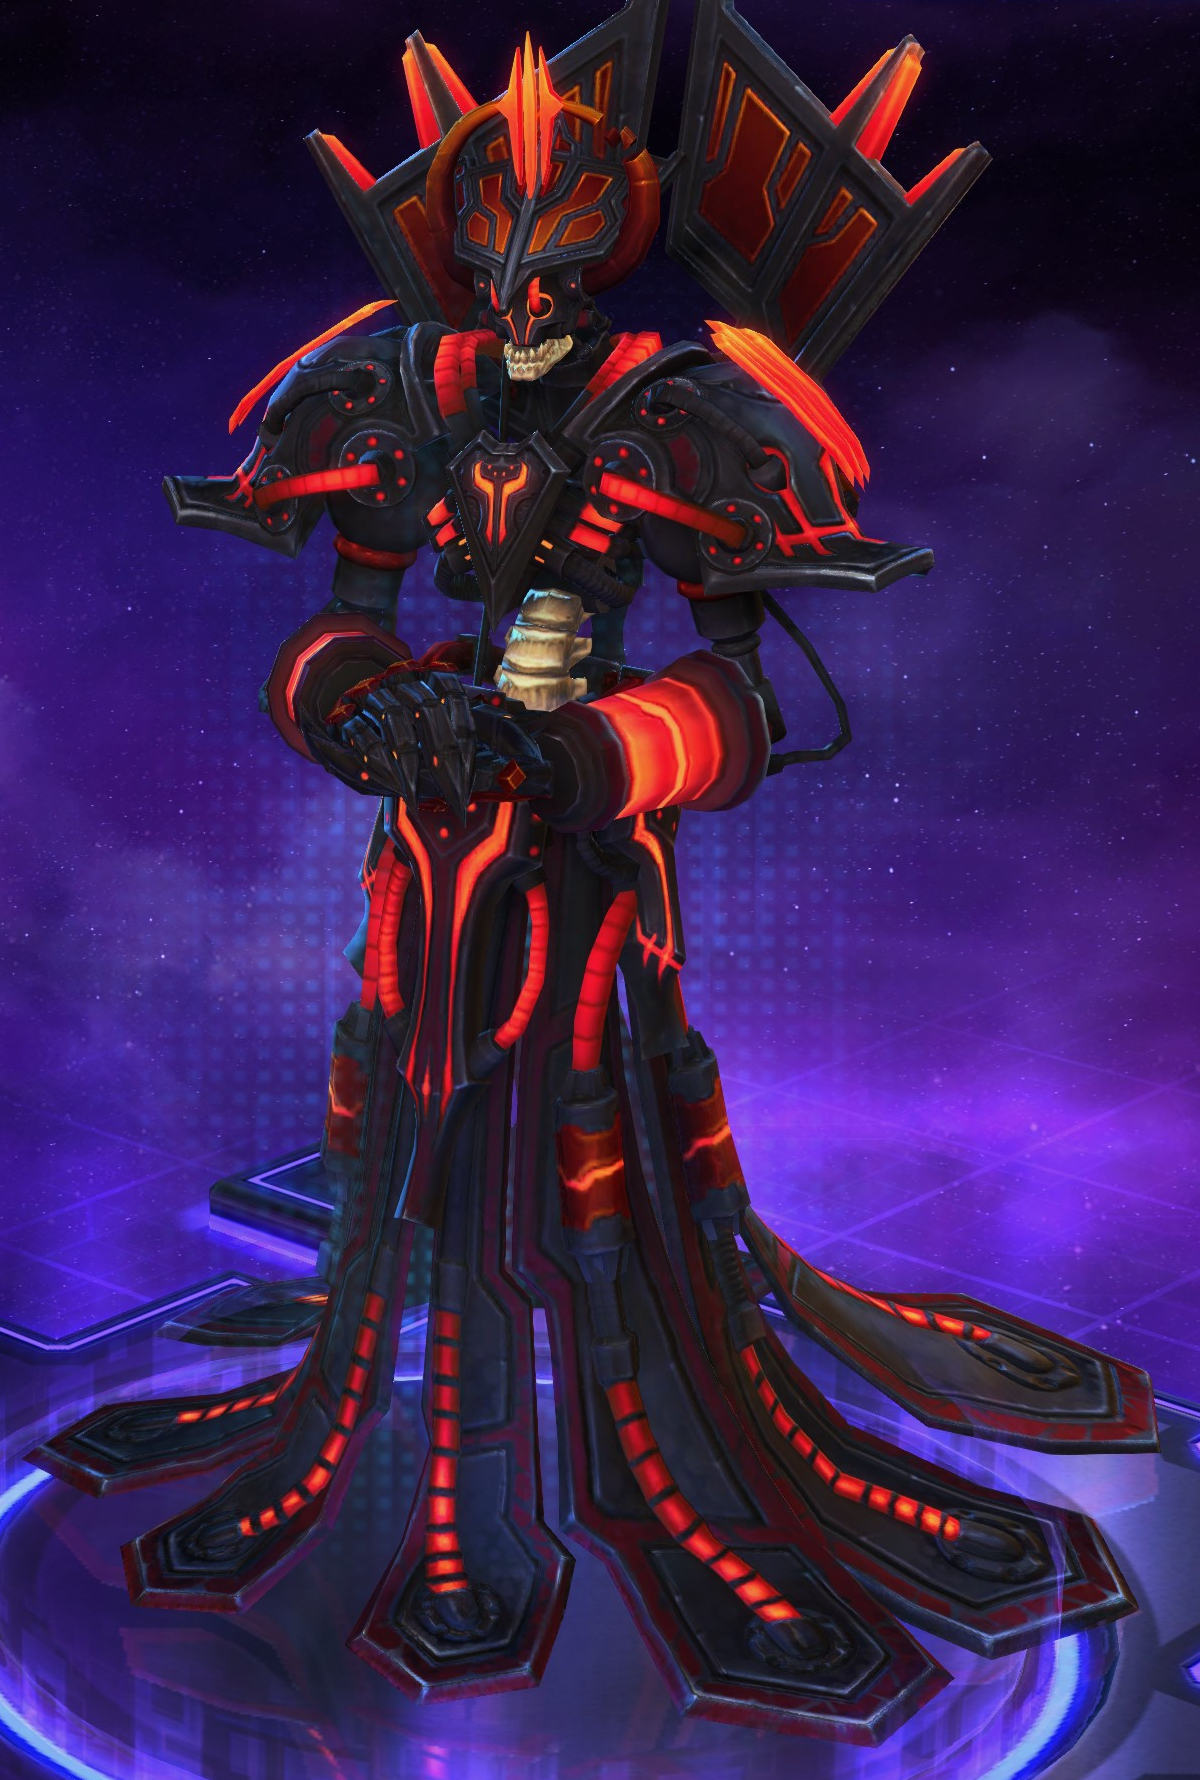 Kel 39 thuzad character abilities and quotes lore - Heroes of the storm space lord leoric ...